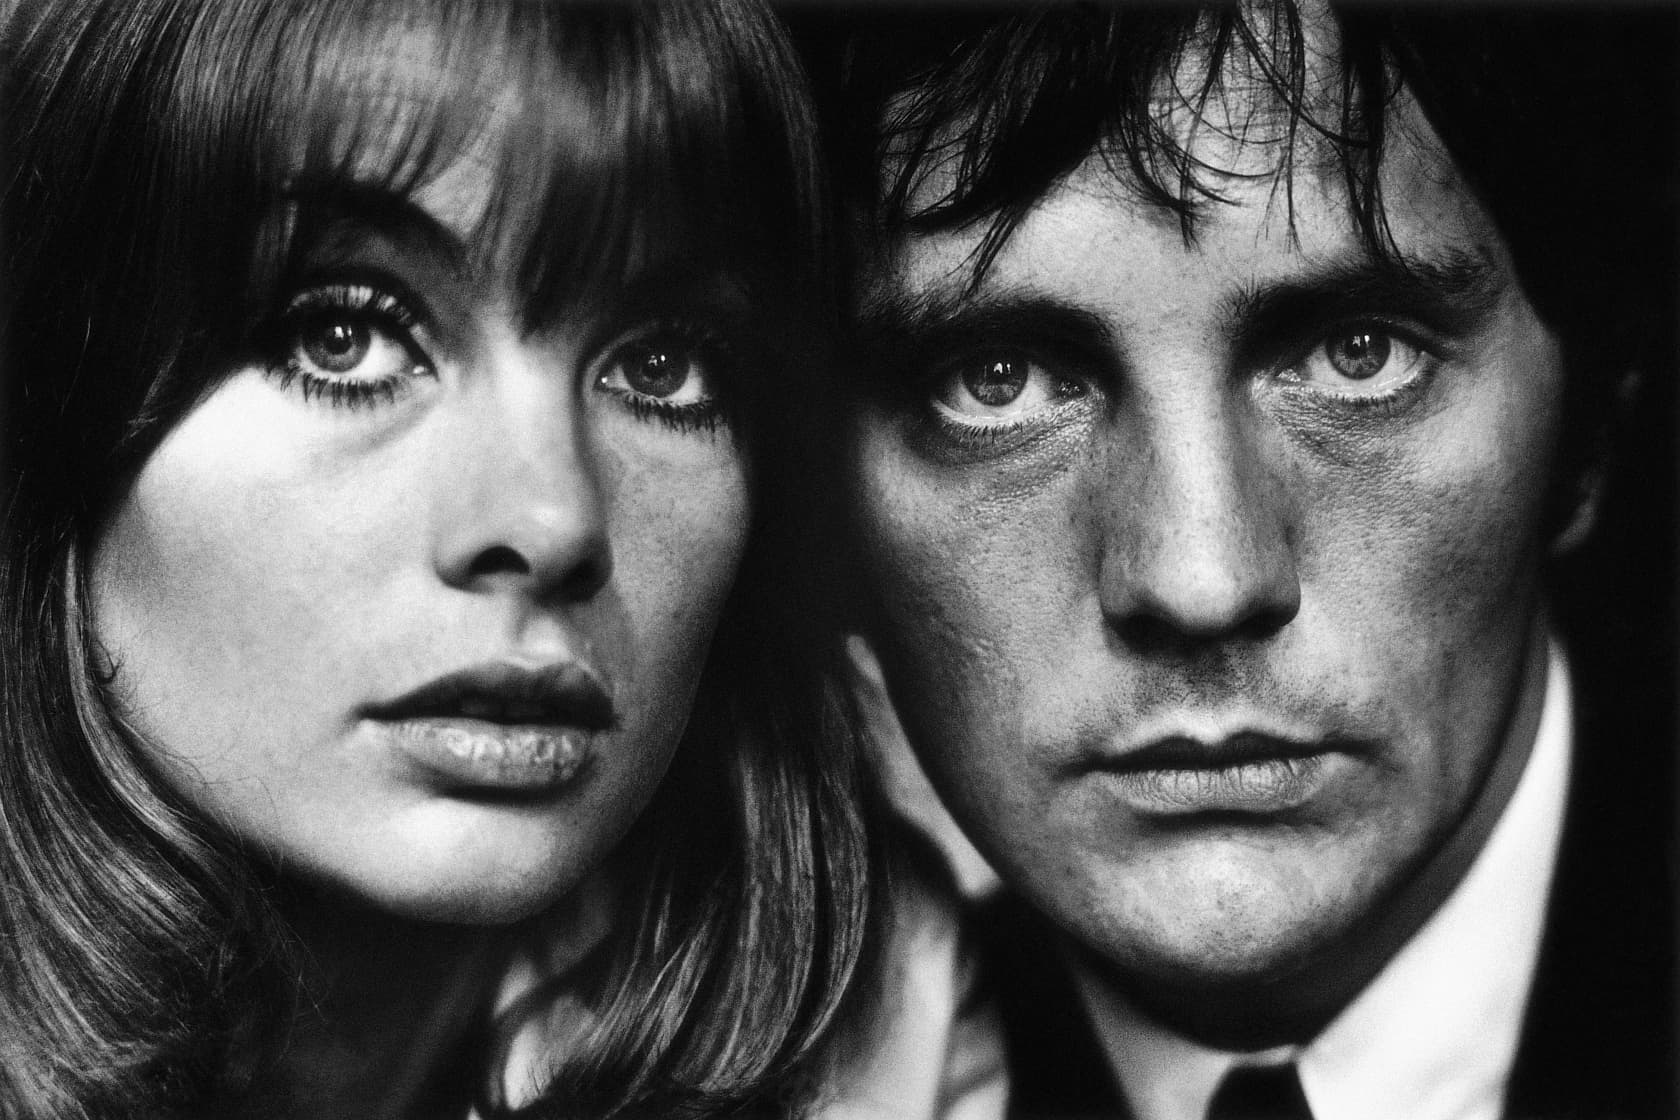 Terry O'Neill Jean Shrimpton and Terence Stamp, London Lifetime Gelatin Silver Print